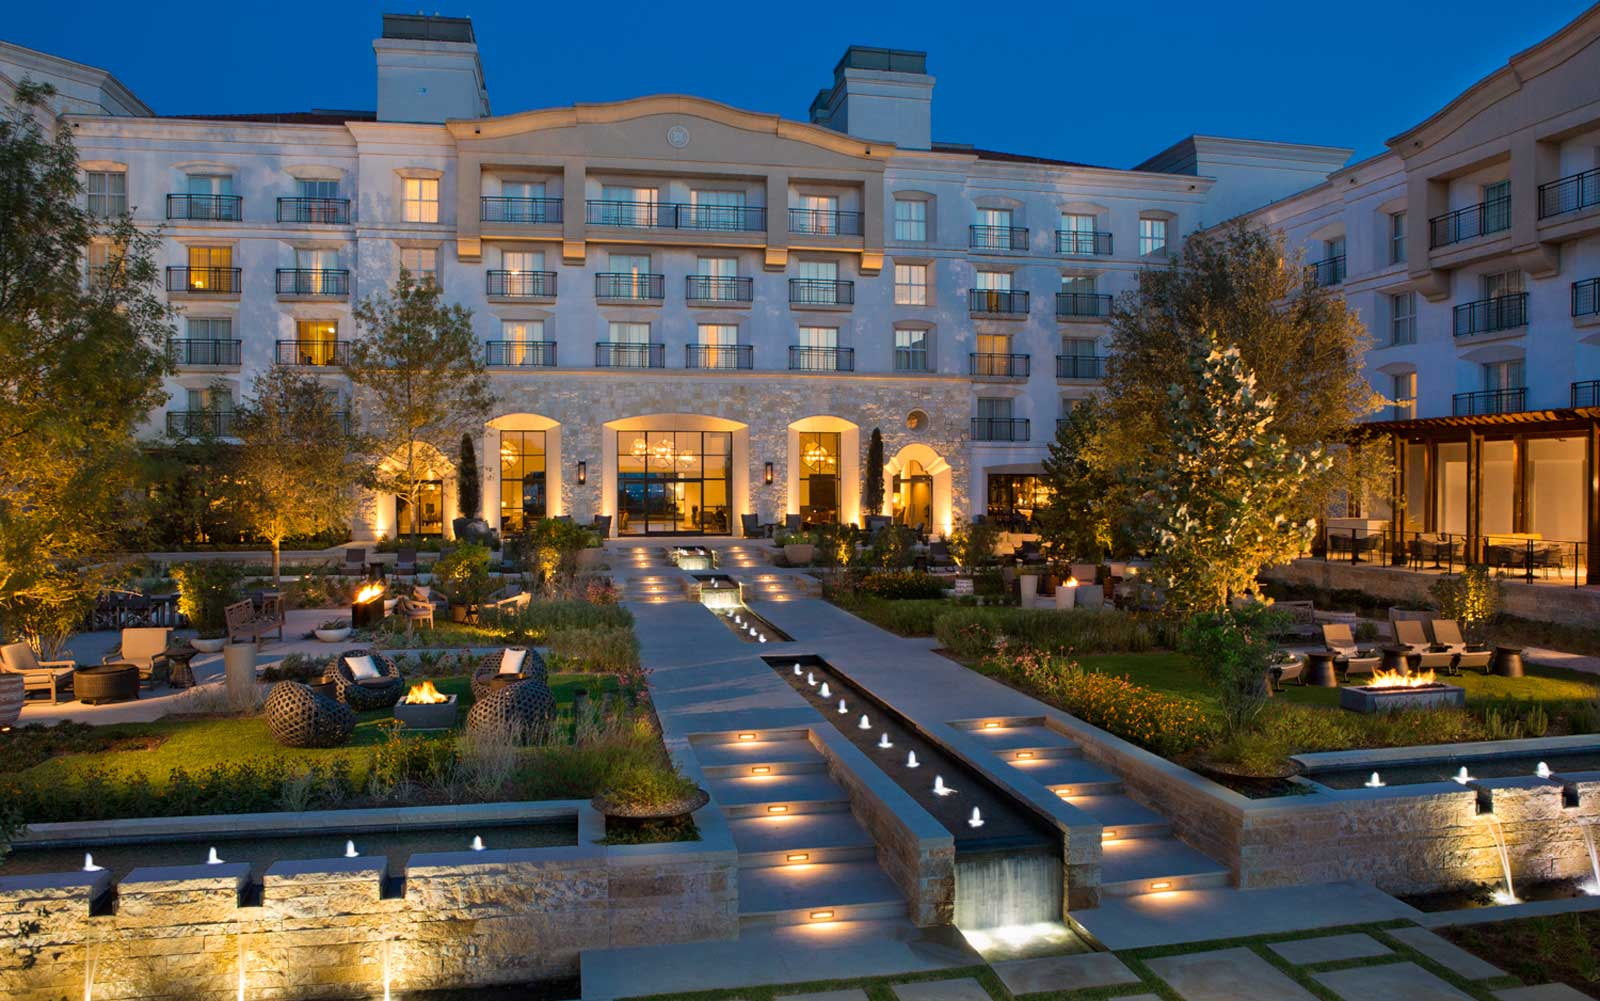 Enjoy Stays at La Cantera Resort & Spa in Texas Hill Country for Only $179 Per Night